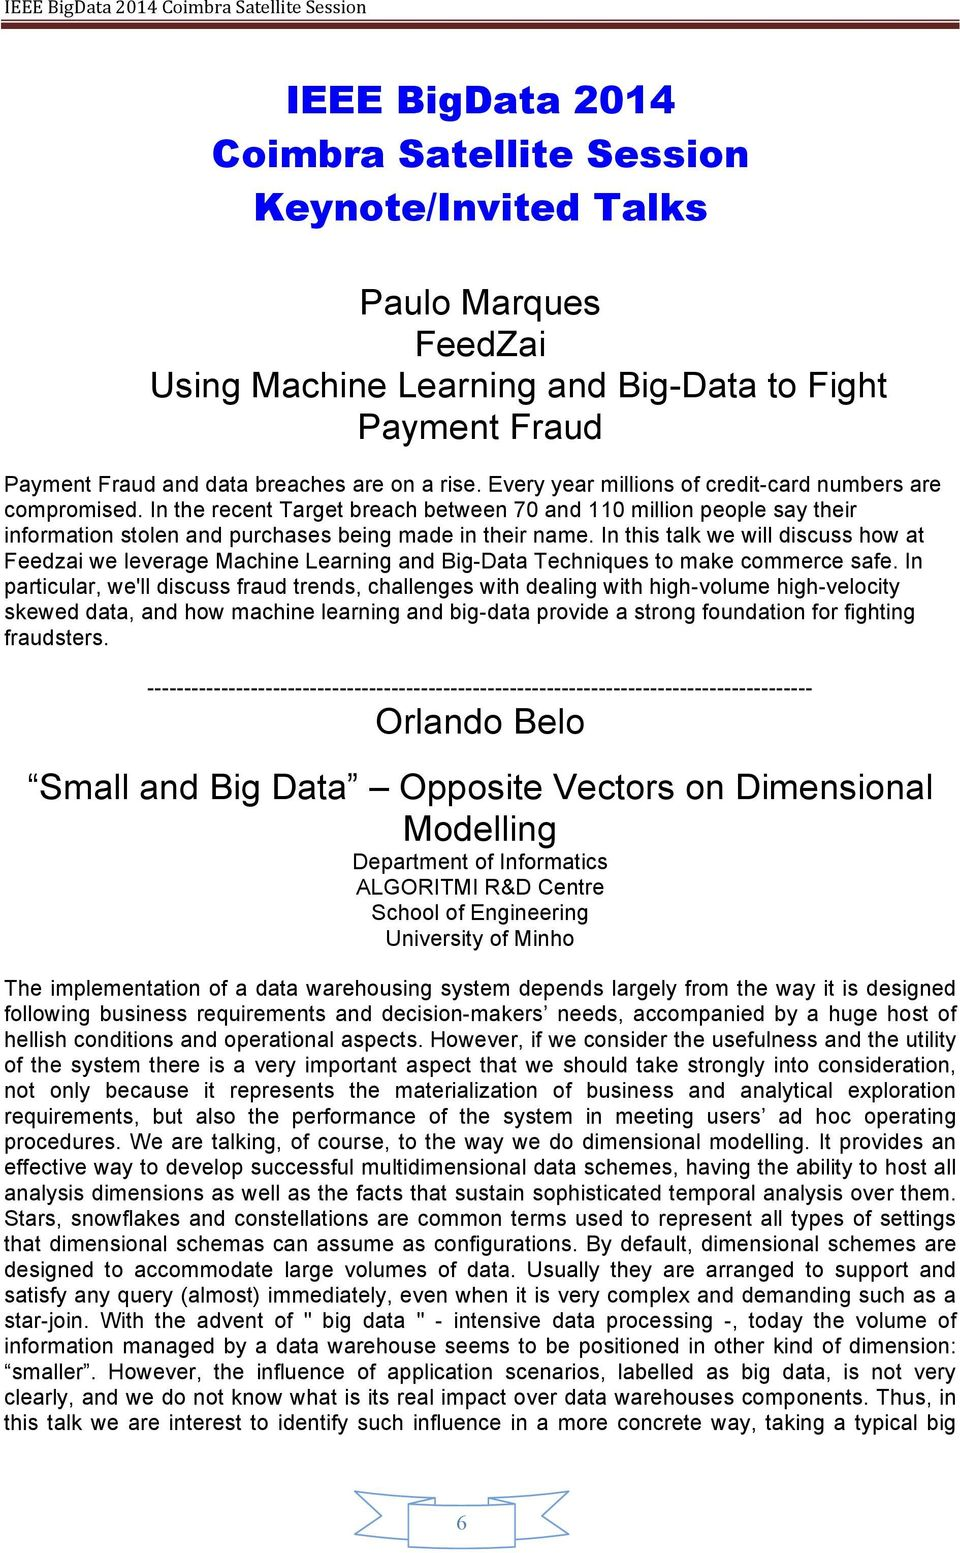 In this talk we will discuss how at Feedzai we leverage Machine Learning and Big-Data Techniques to make commerce safe.